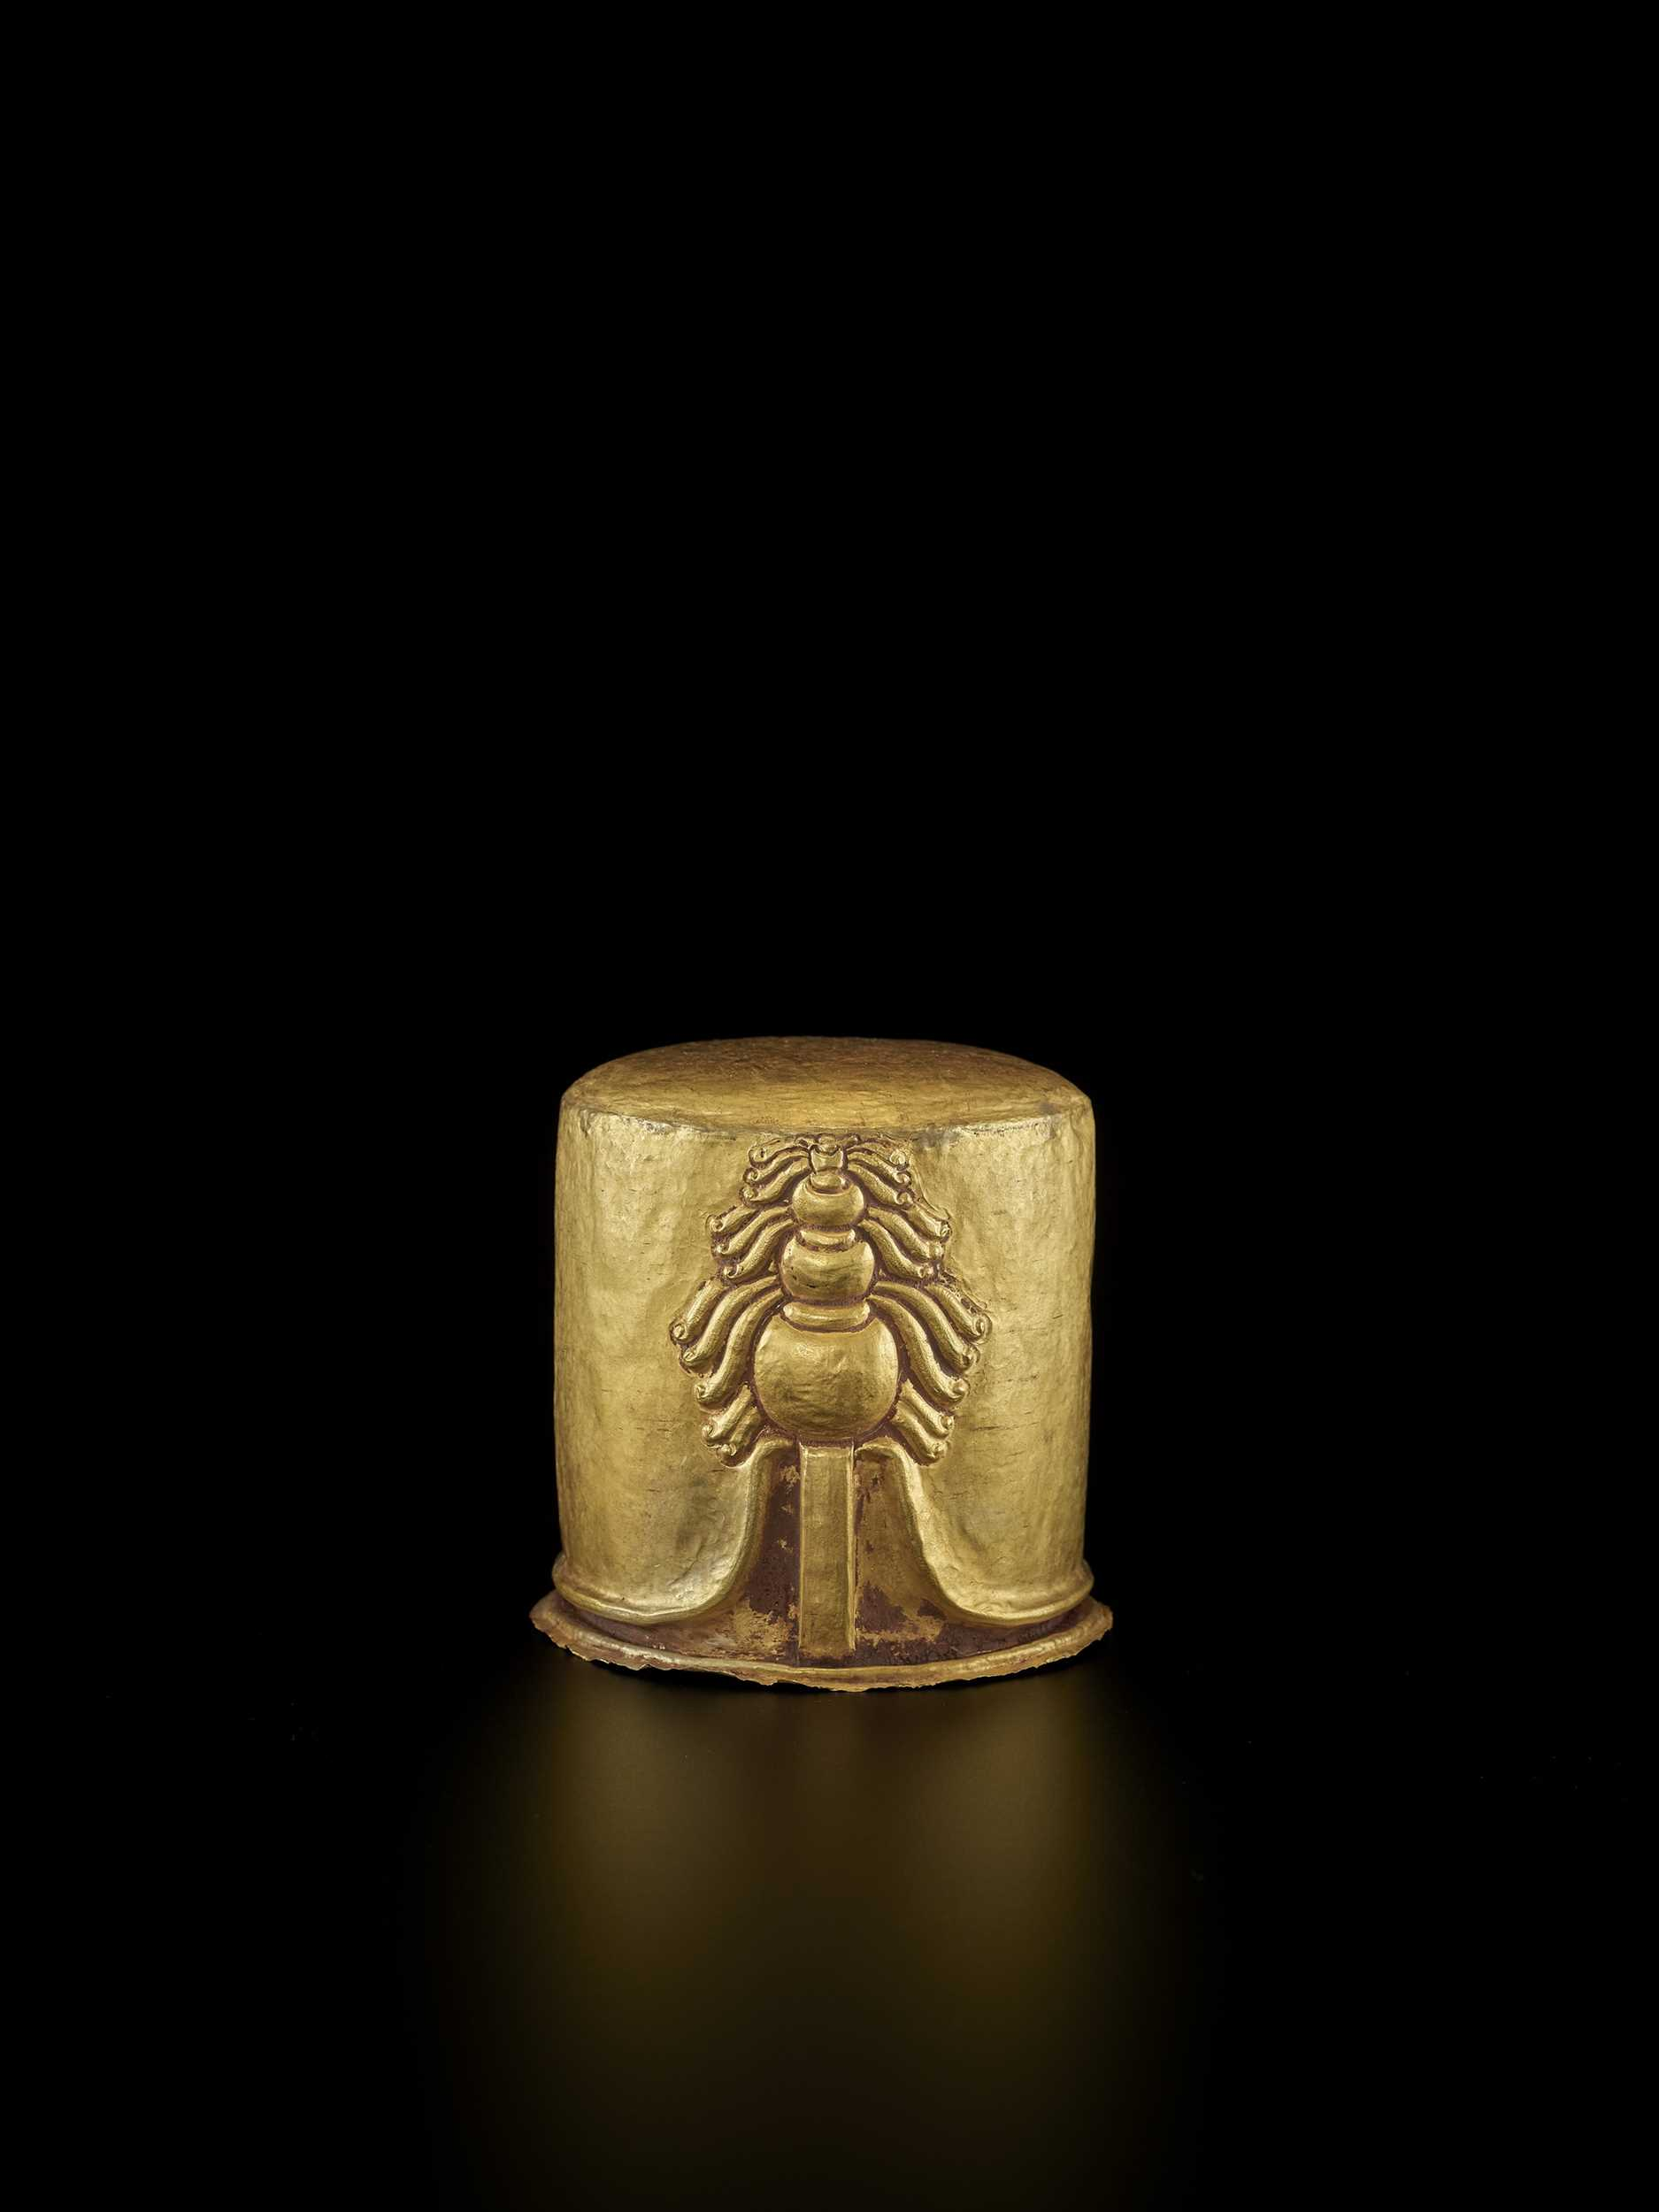 Lot 31-AN EXCEPTIONAL AND RARE CHAM GOLD REPOUSSÉ LINGAM WITH SHIVA'S LOCKS OF HAIR